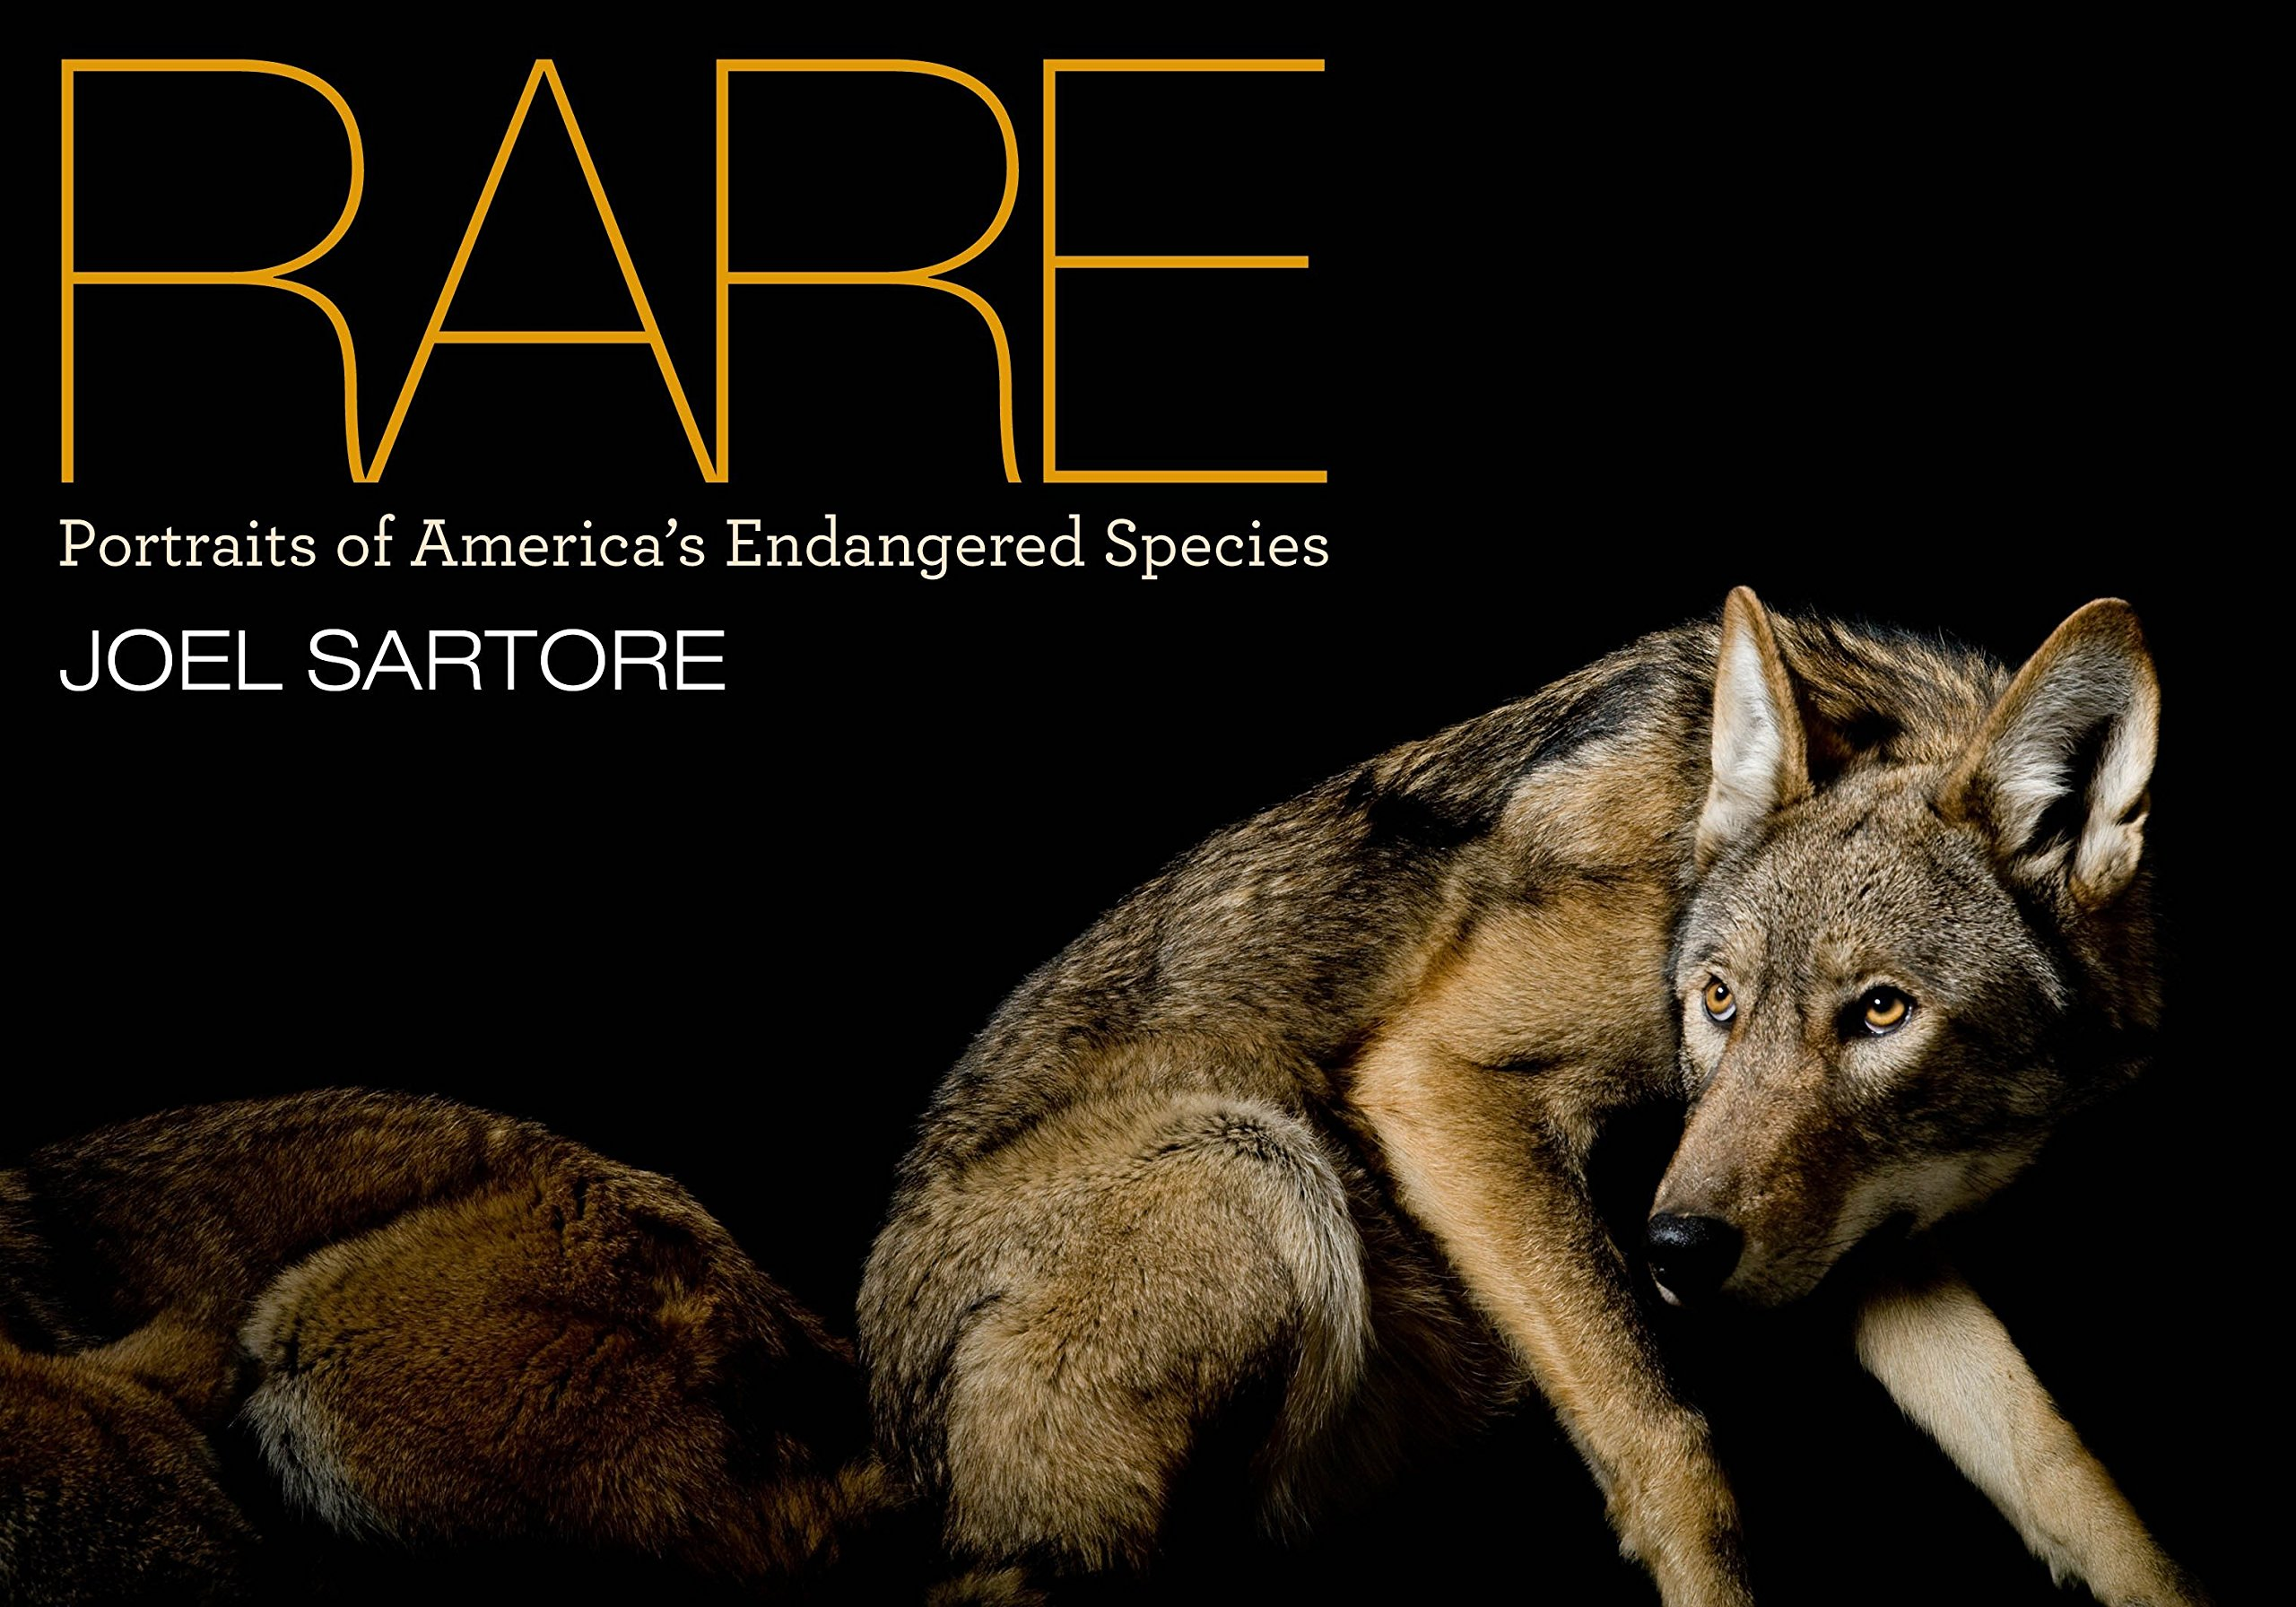 Image of: Critically Endangered Amazoncom Rare Portraits Of Americas Endangered Species 9781426205750 Joel Sartore Books Amazoncom Amazoncom Rare Portraits Of Americas Endangered Species